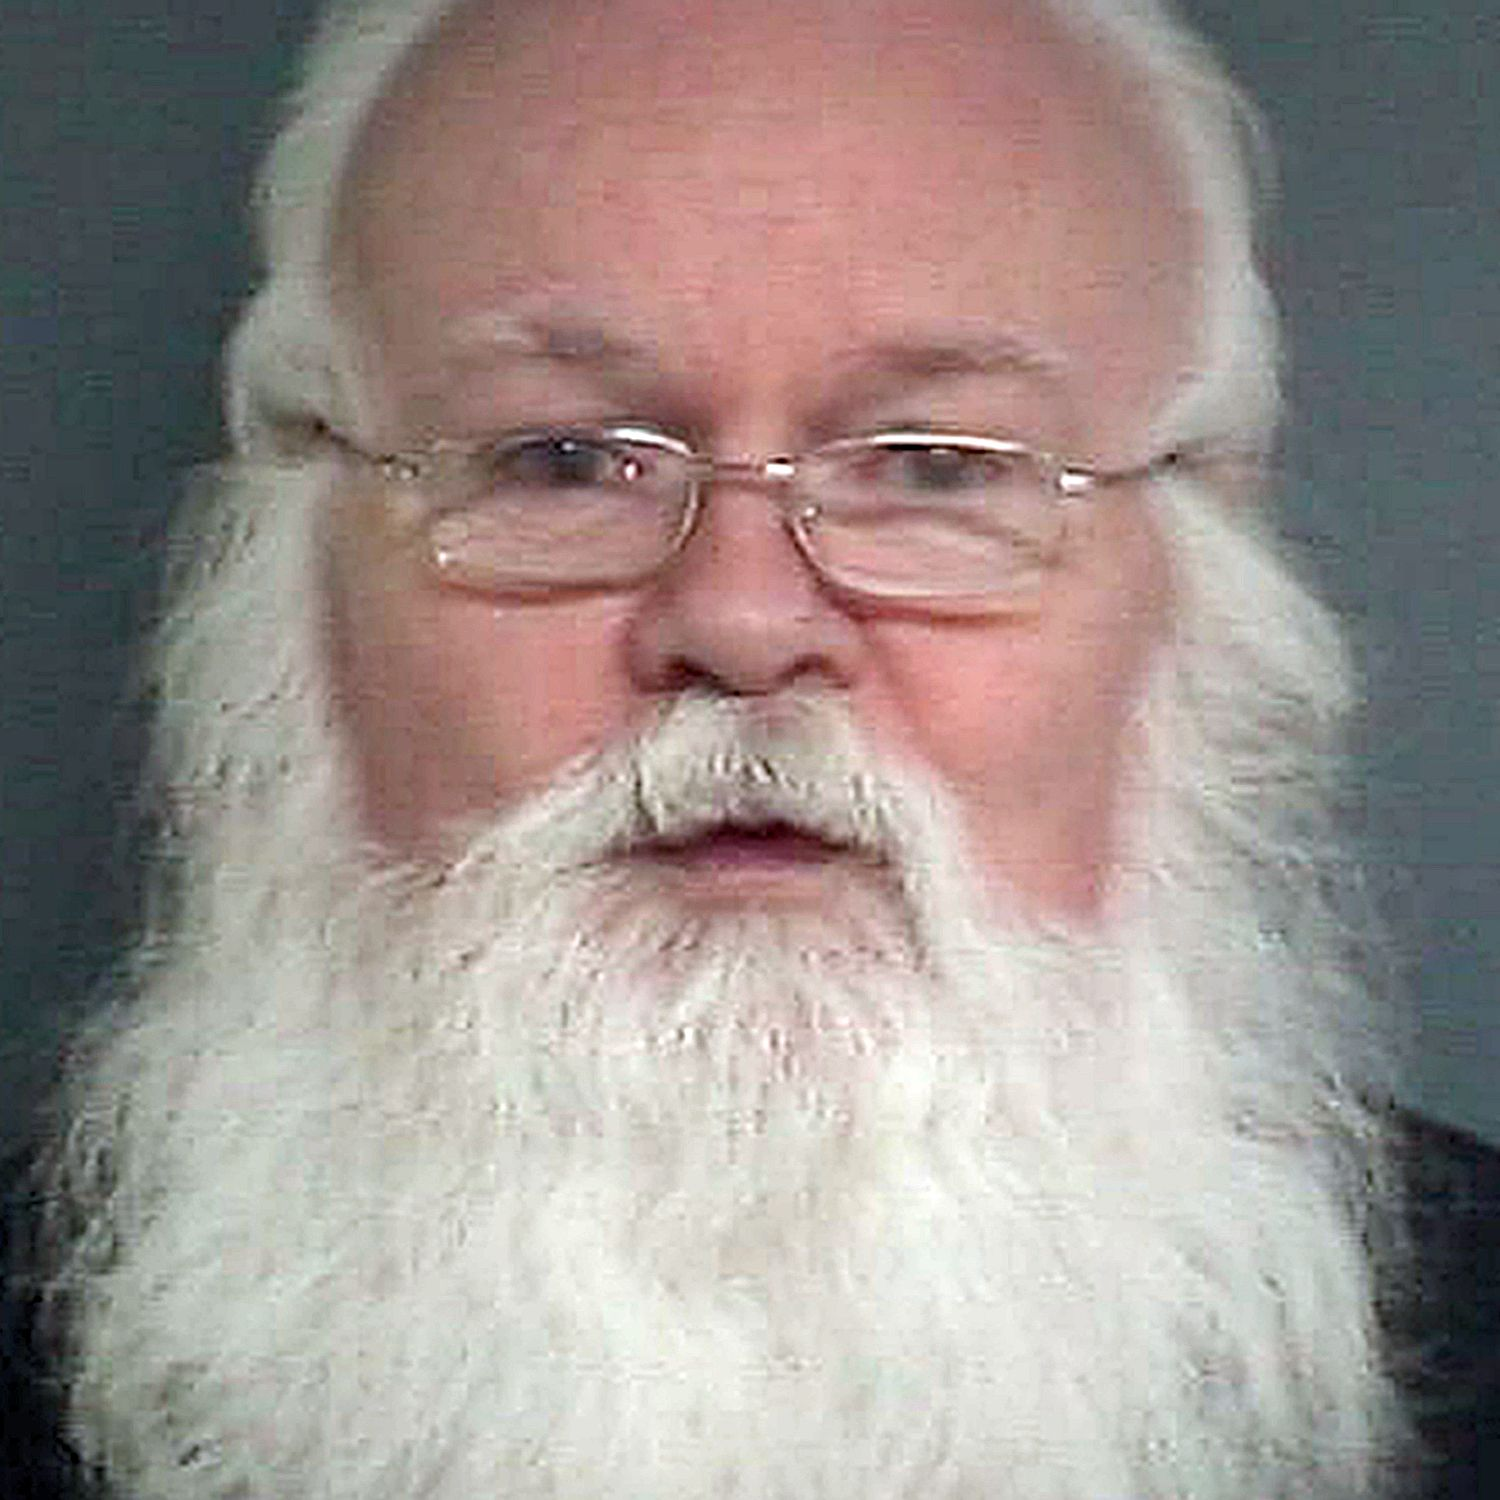 Bearded paedo Lawrence Lewis who looked like Santa jailed after offering girl …